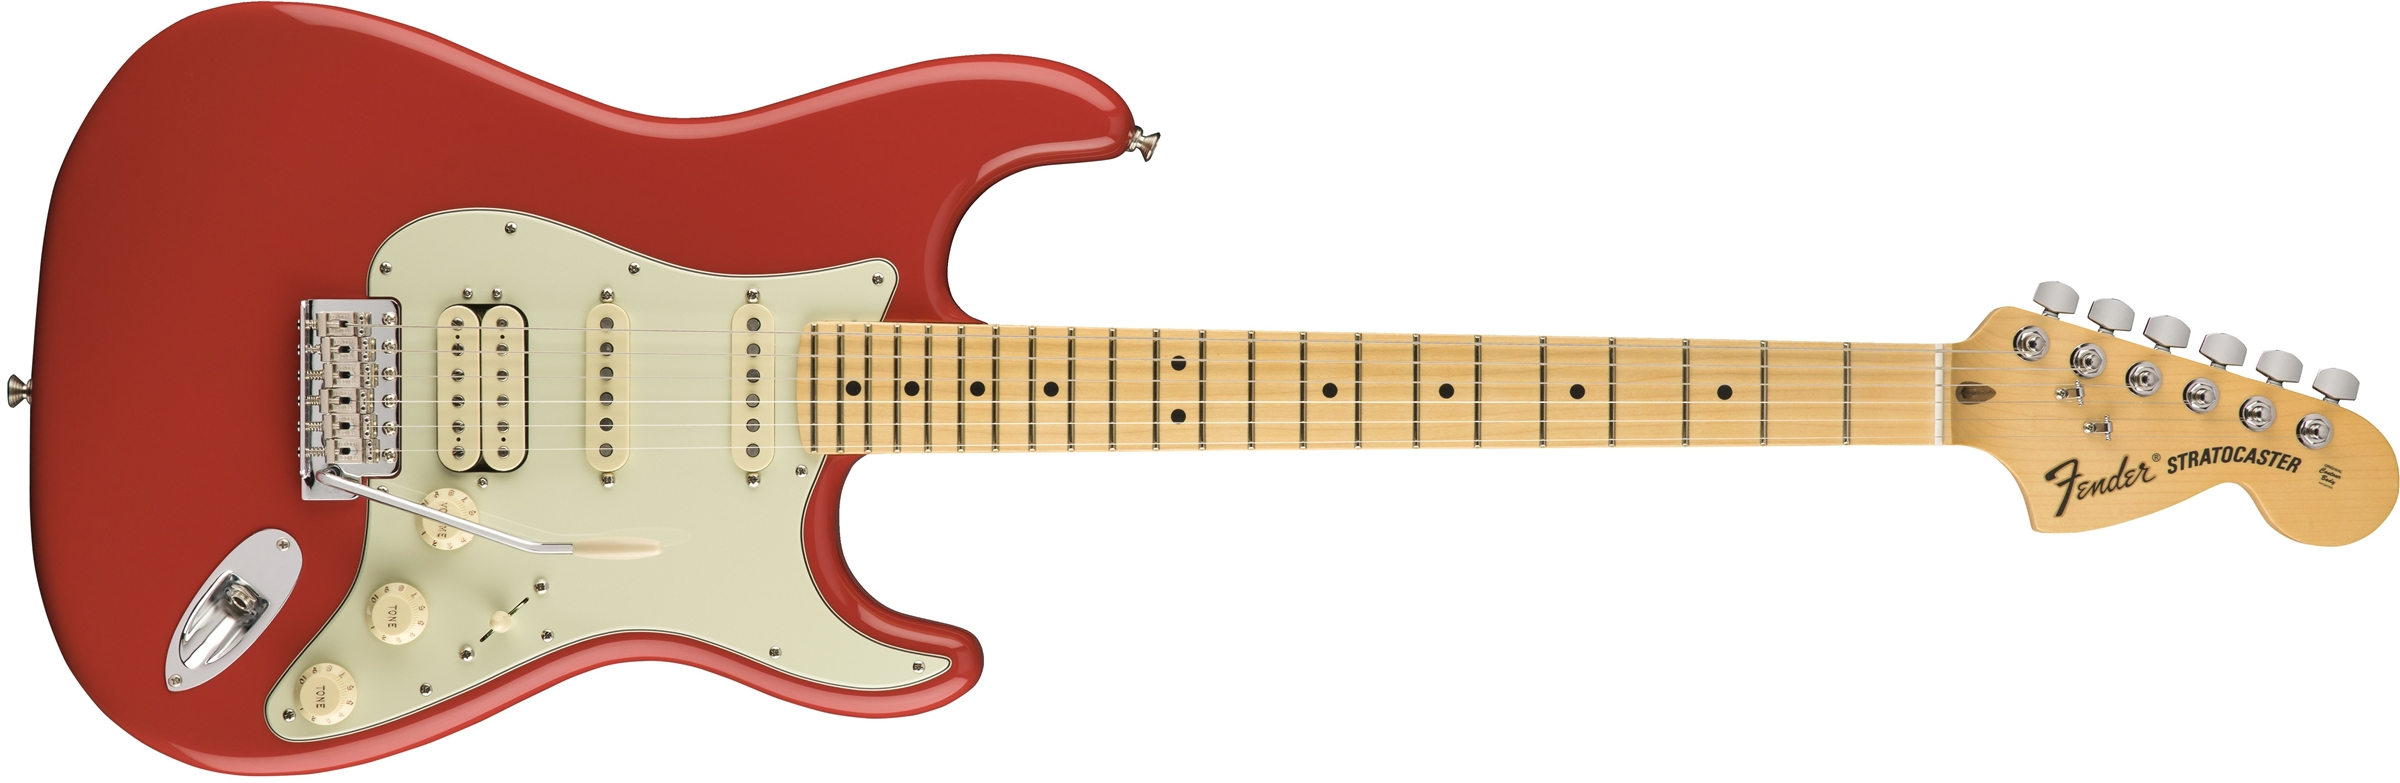 Fender Stratocaster Hss Wiring Diagram Color Worksheet And Mexican Strat American Special Electric Guitars Rh Shop Com Guitar